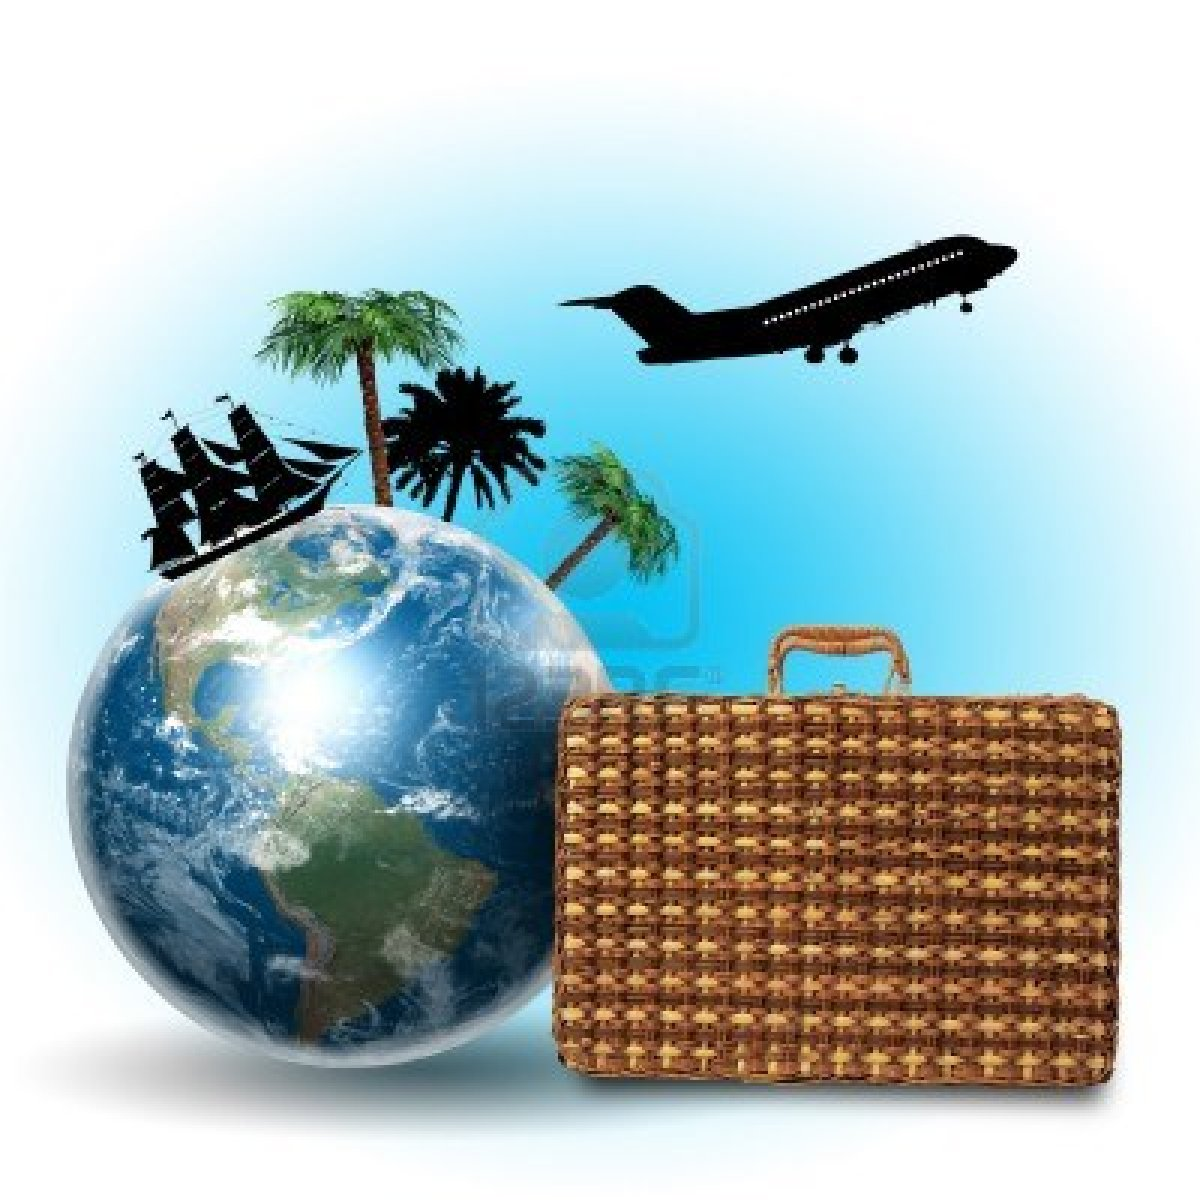 11203536-collage-about-tourism-and-travel-with-planet-earth-and-plane.jpg